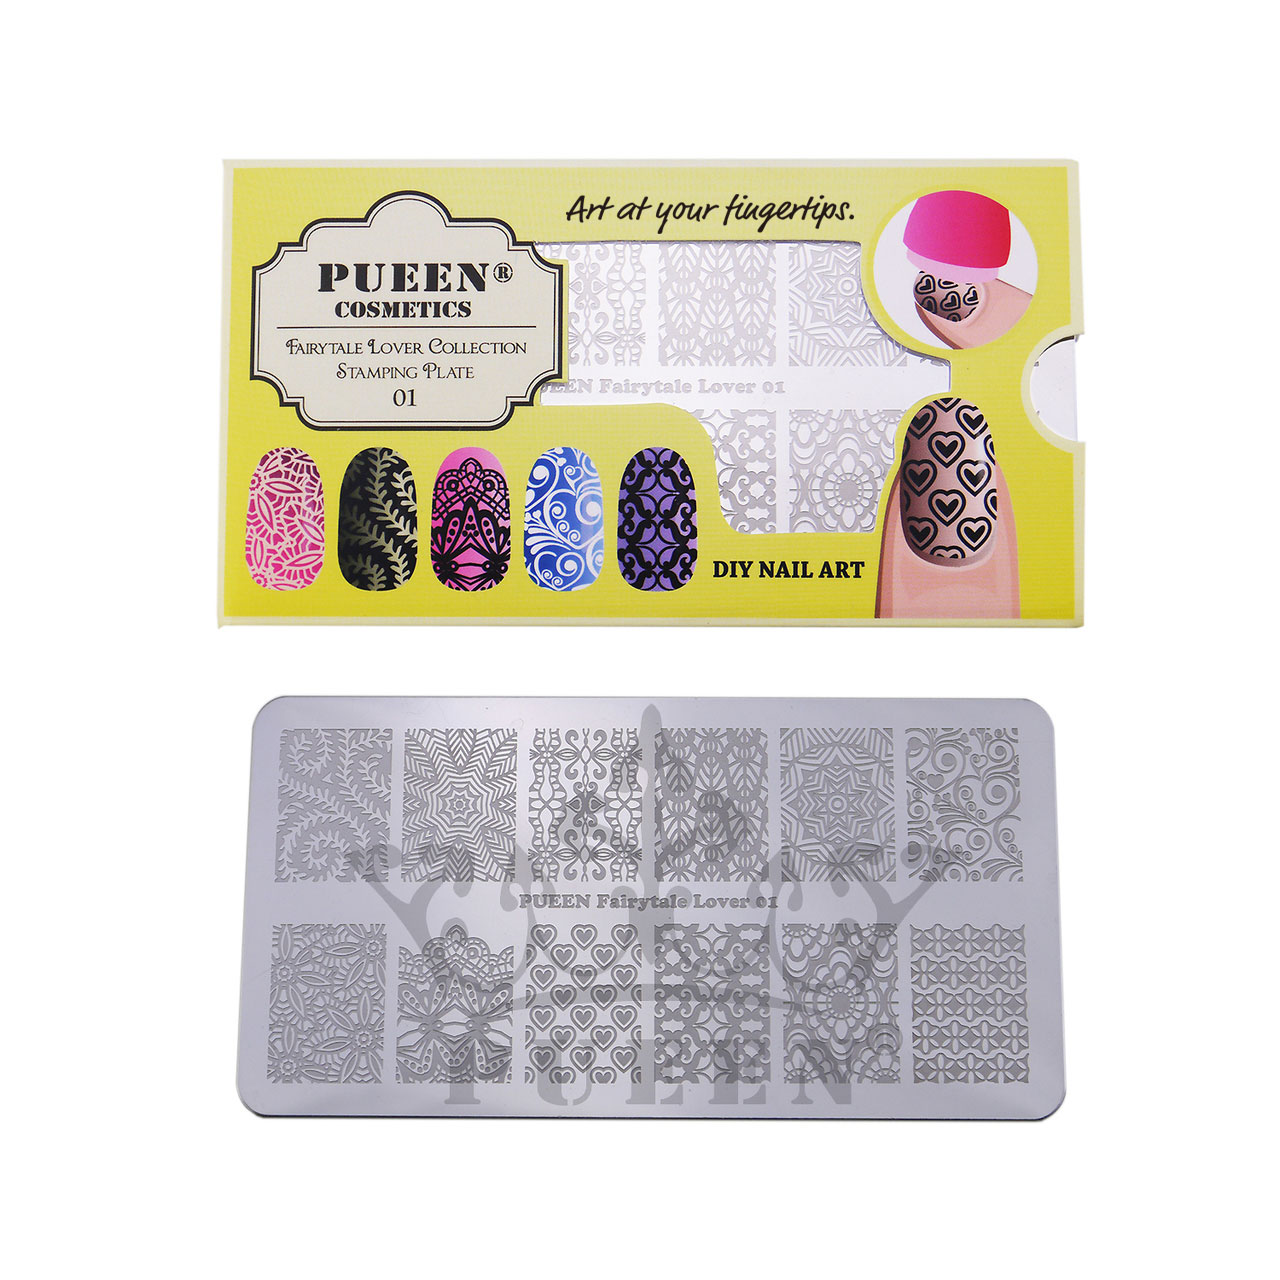 Pueen Stamping Plate Fairytale Lover 01